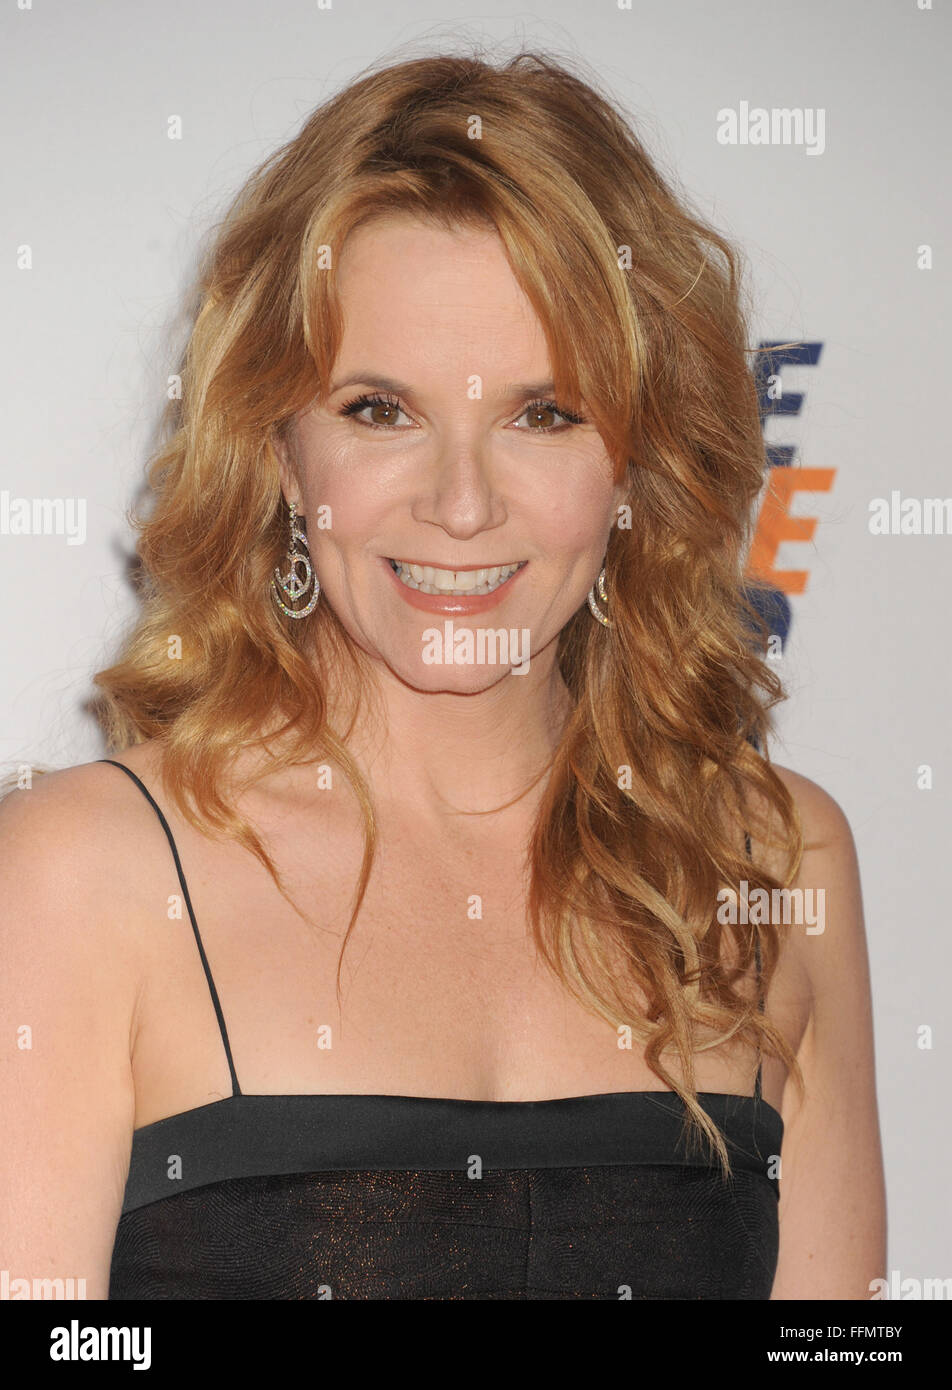 Actress Lea Thompson arrives at the 22nd Annual Race To Erase MS at the Hyatt Regency Century Plaza on April 24, - Stock Image